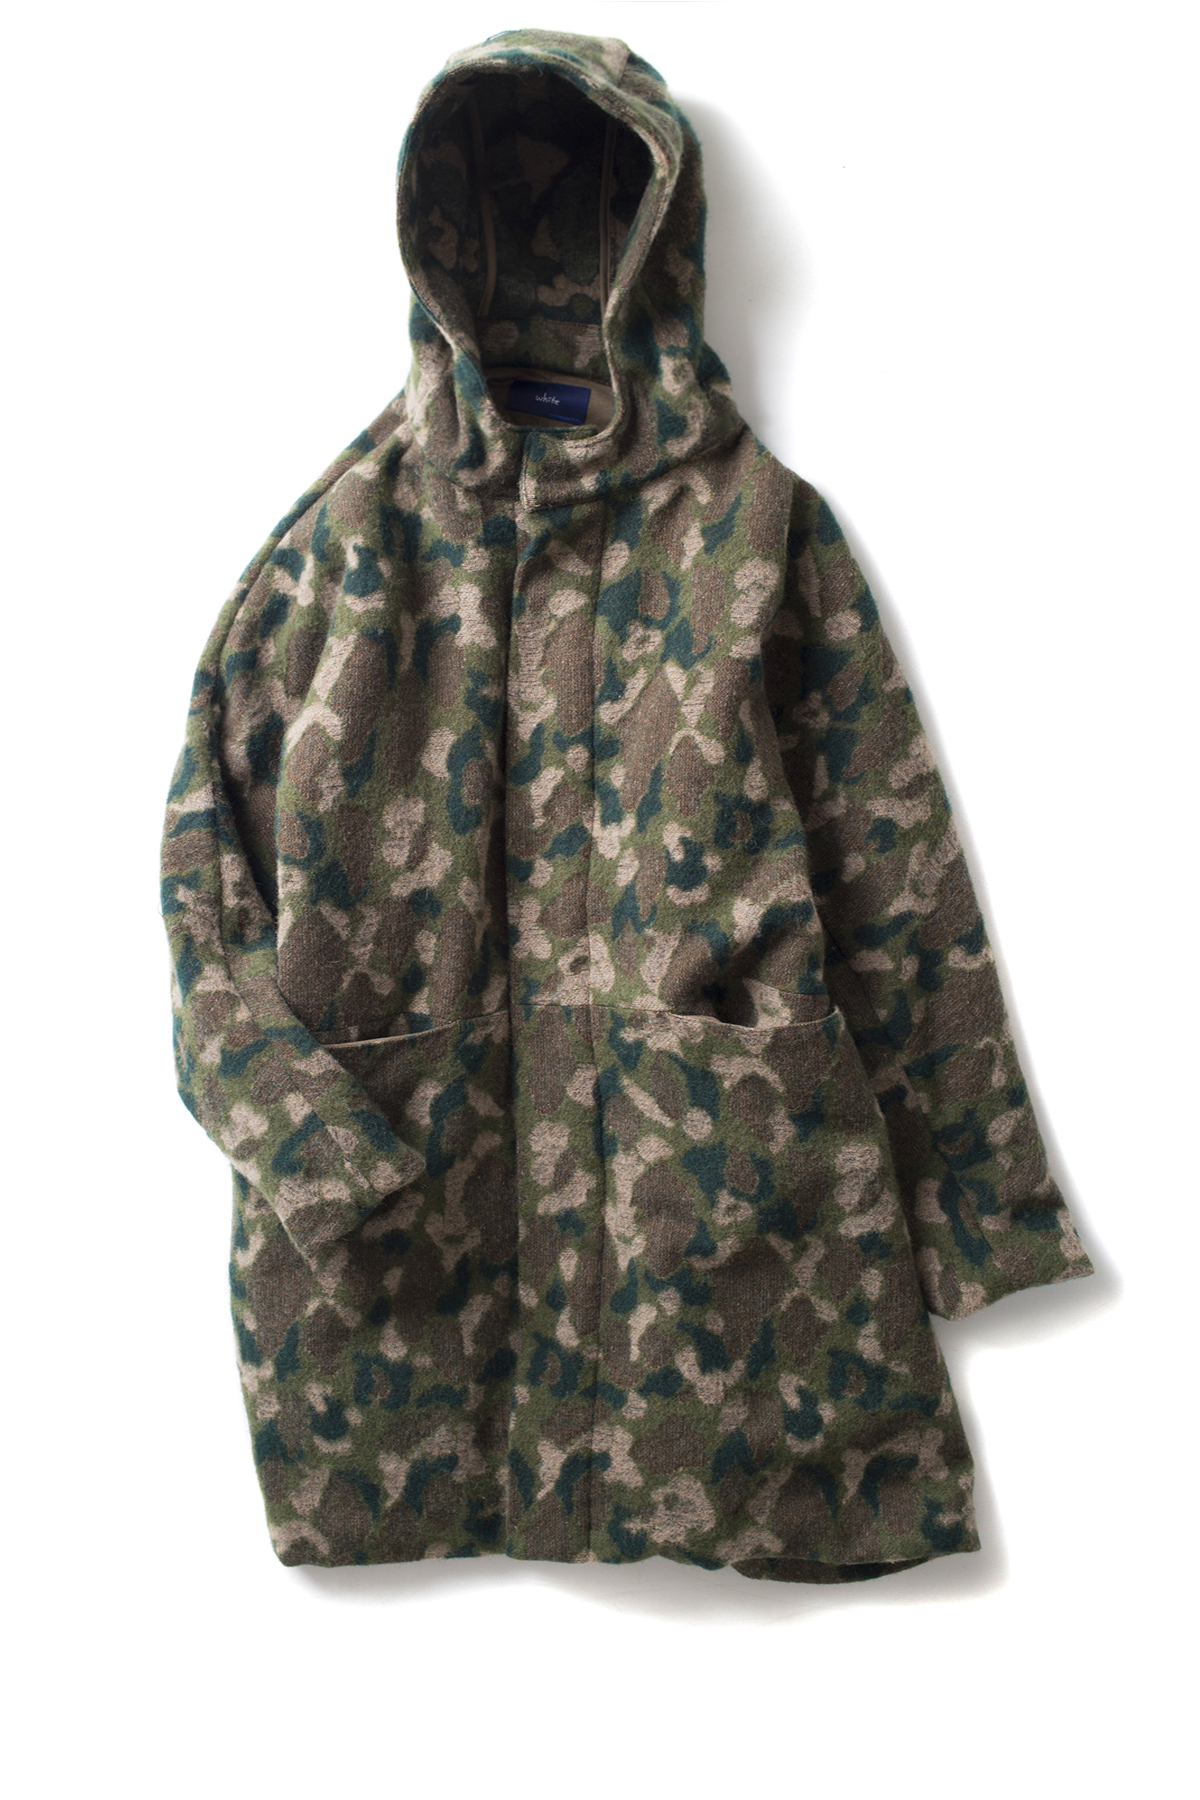 ordinary fits #WHITE : Camo Field Parka (Olive)